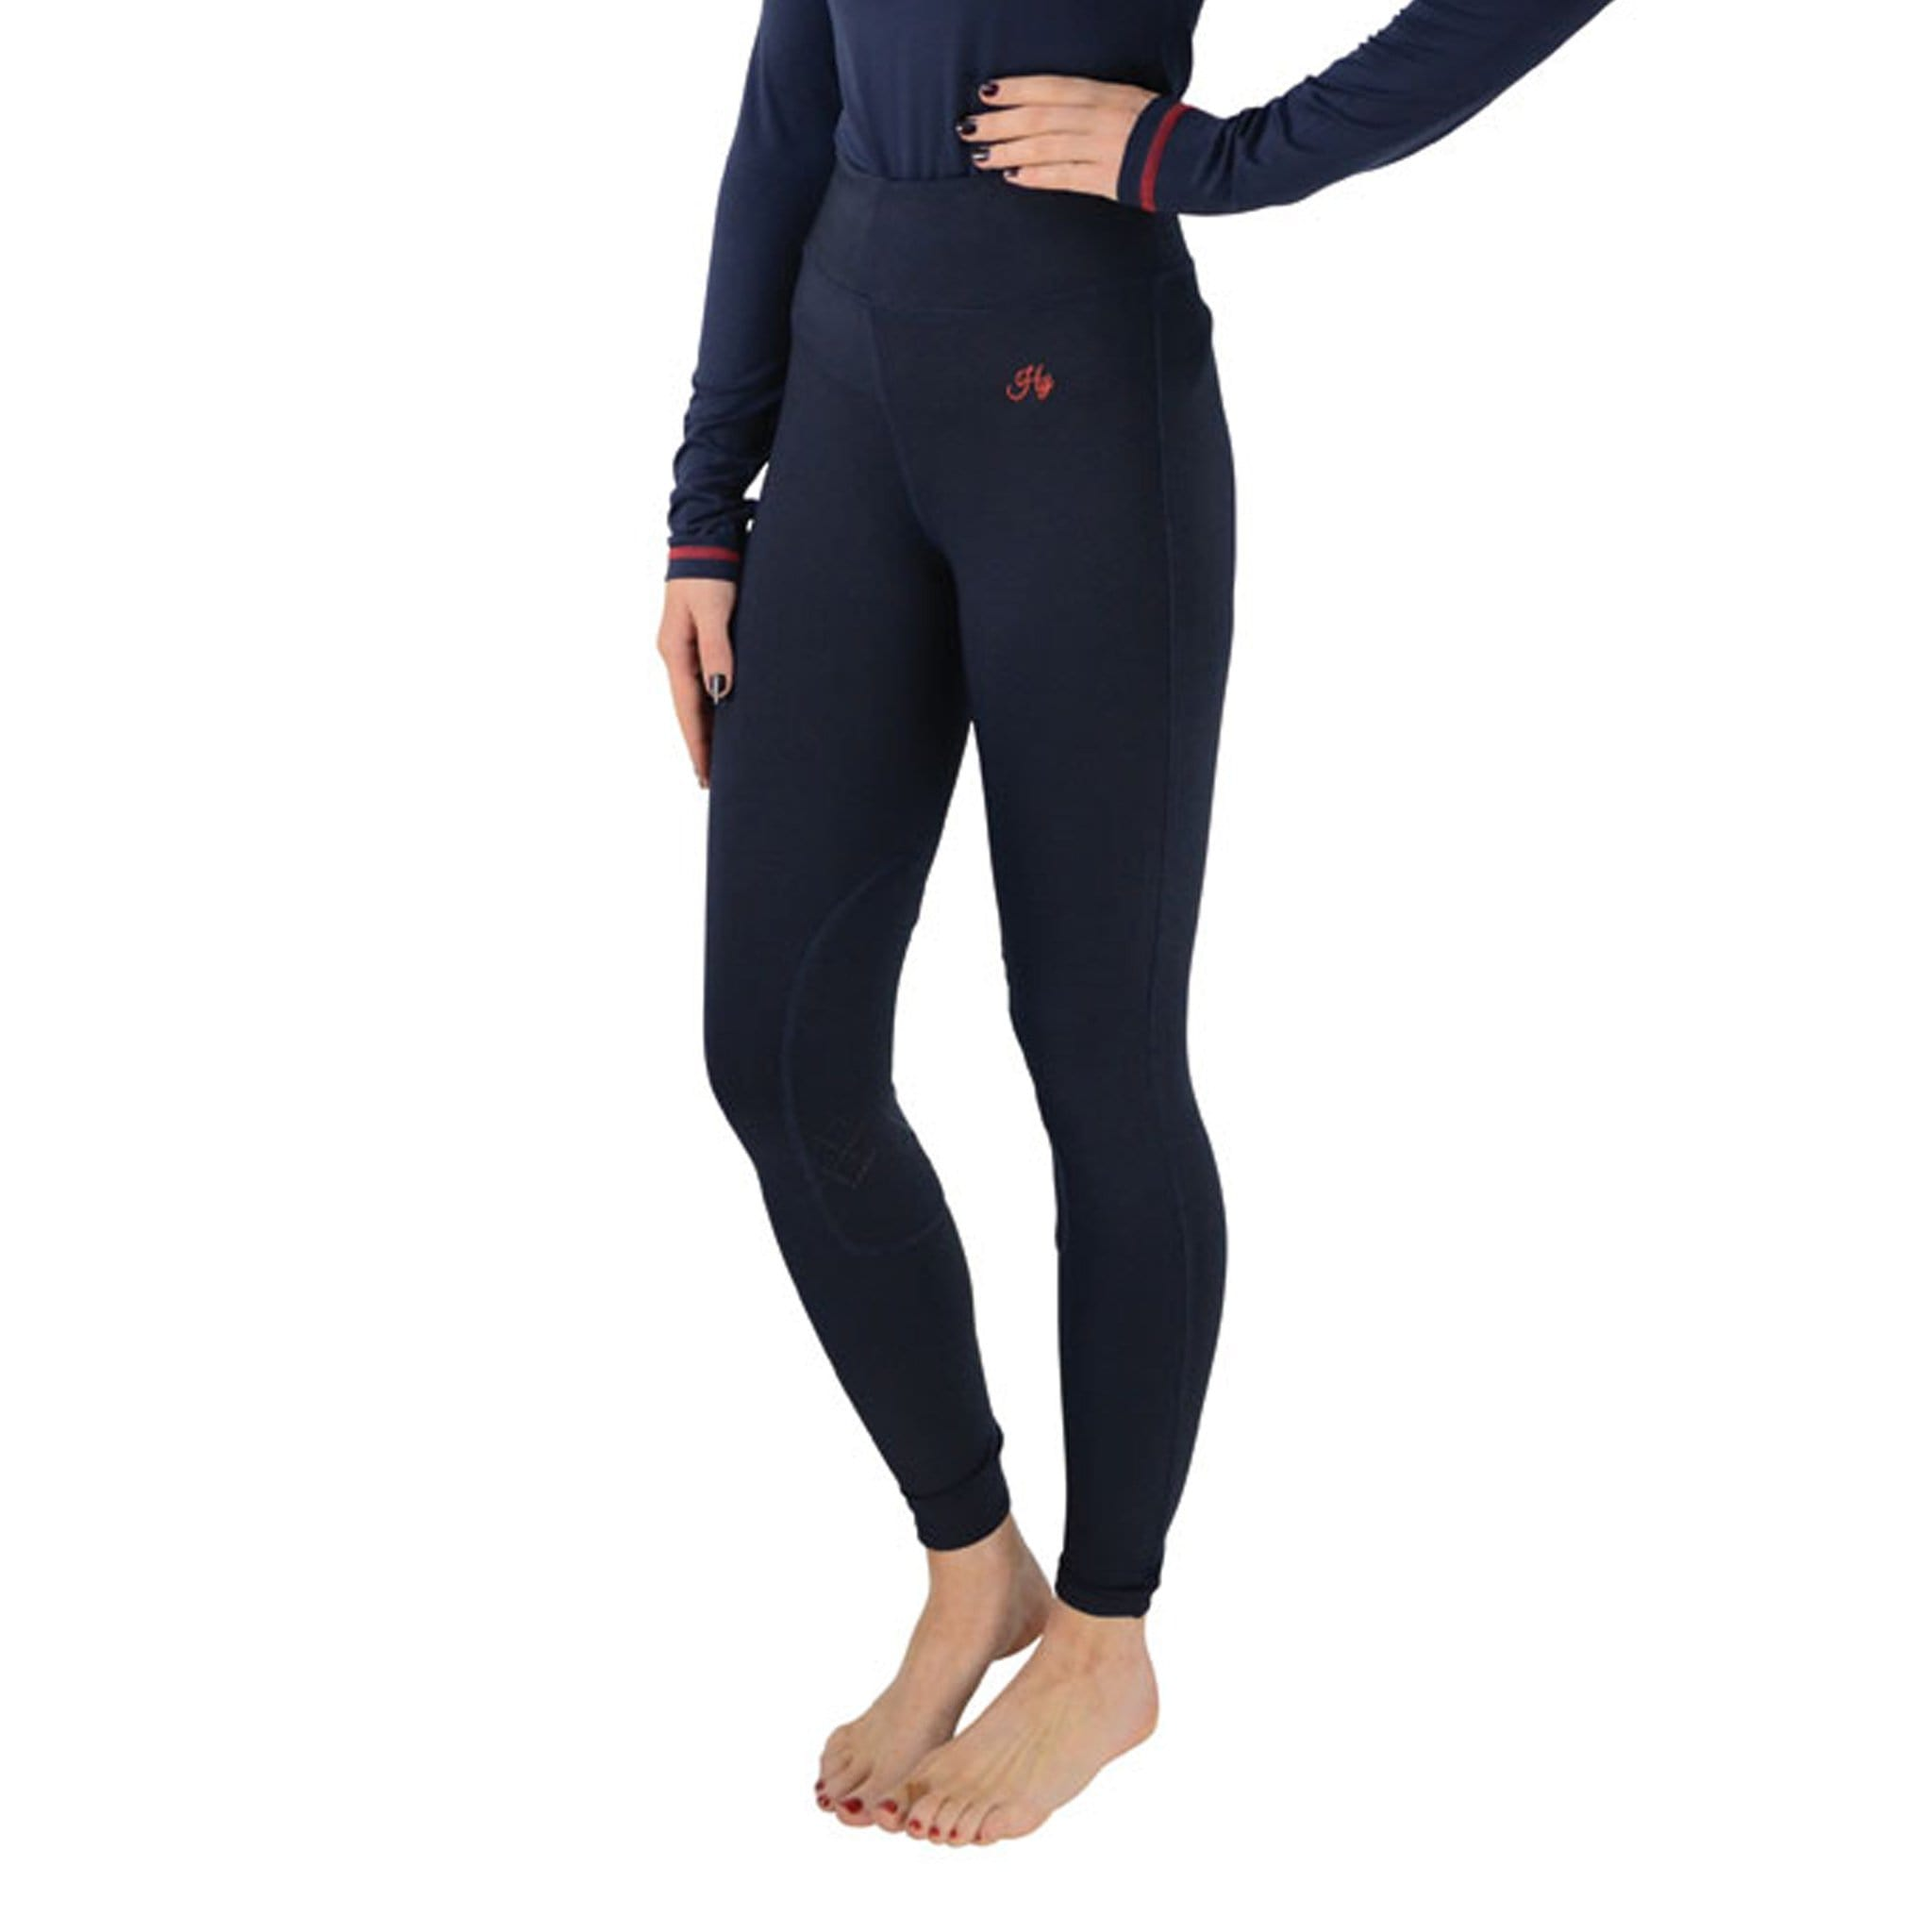 Hy Signature Silicone Knee Patch Riding Tights 22110 Navy and Red Front